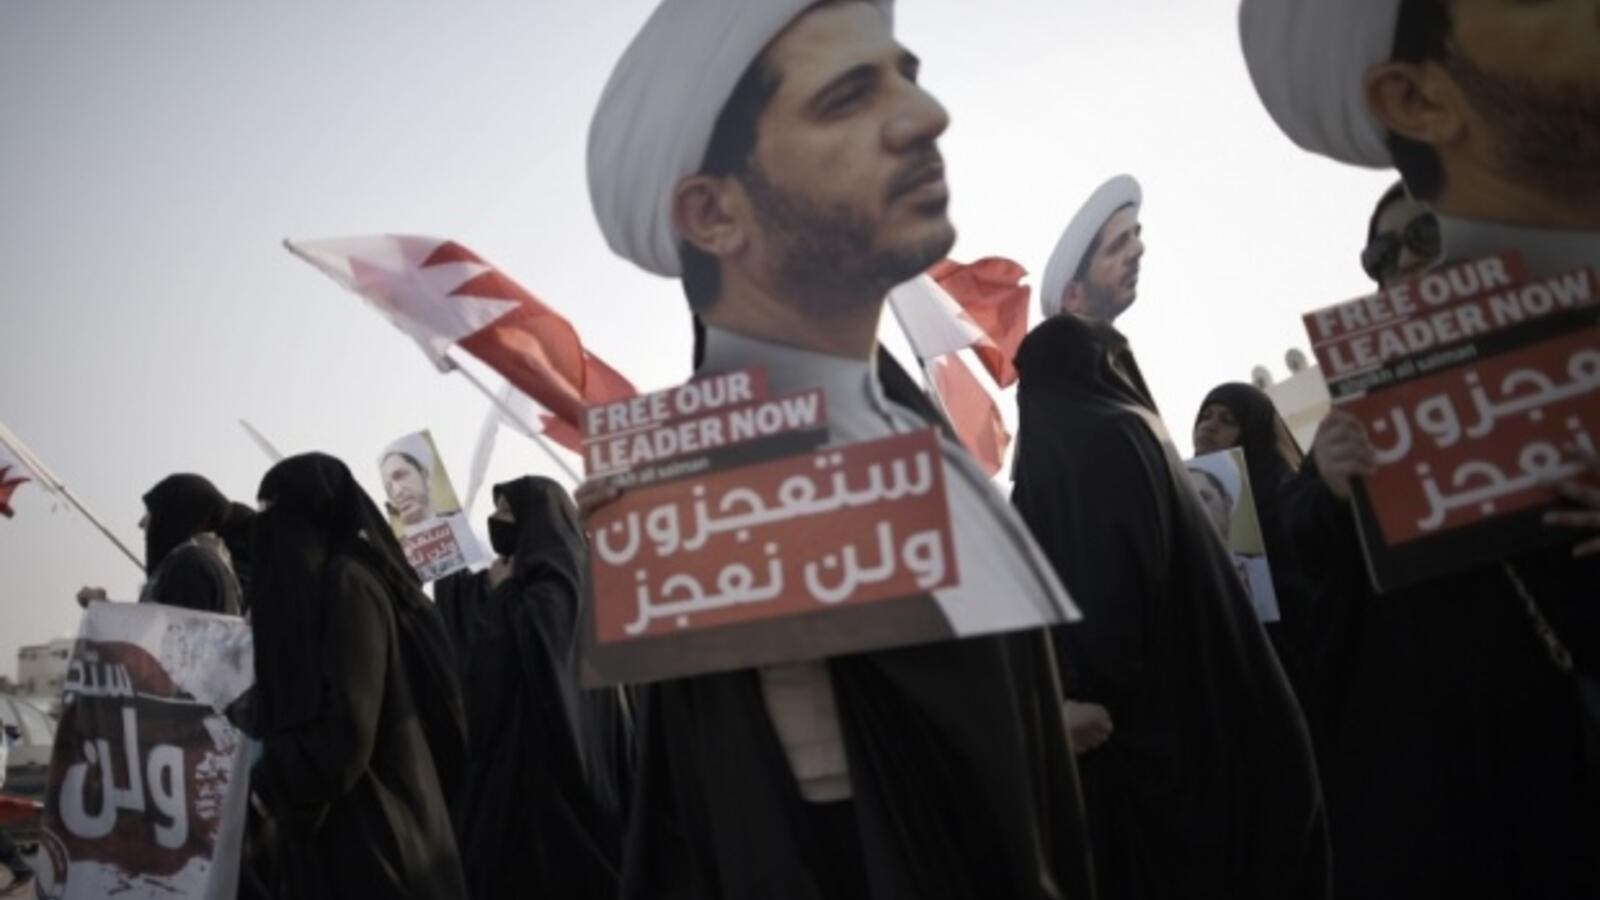 Bahraini protesters march during a demonstration against the arrest of Sheikh Ali Salman. The government has a long history of imprisoning opposition leaders and Shia clerics. (AFP/File)